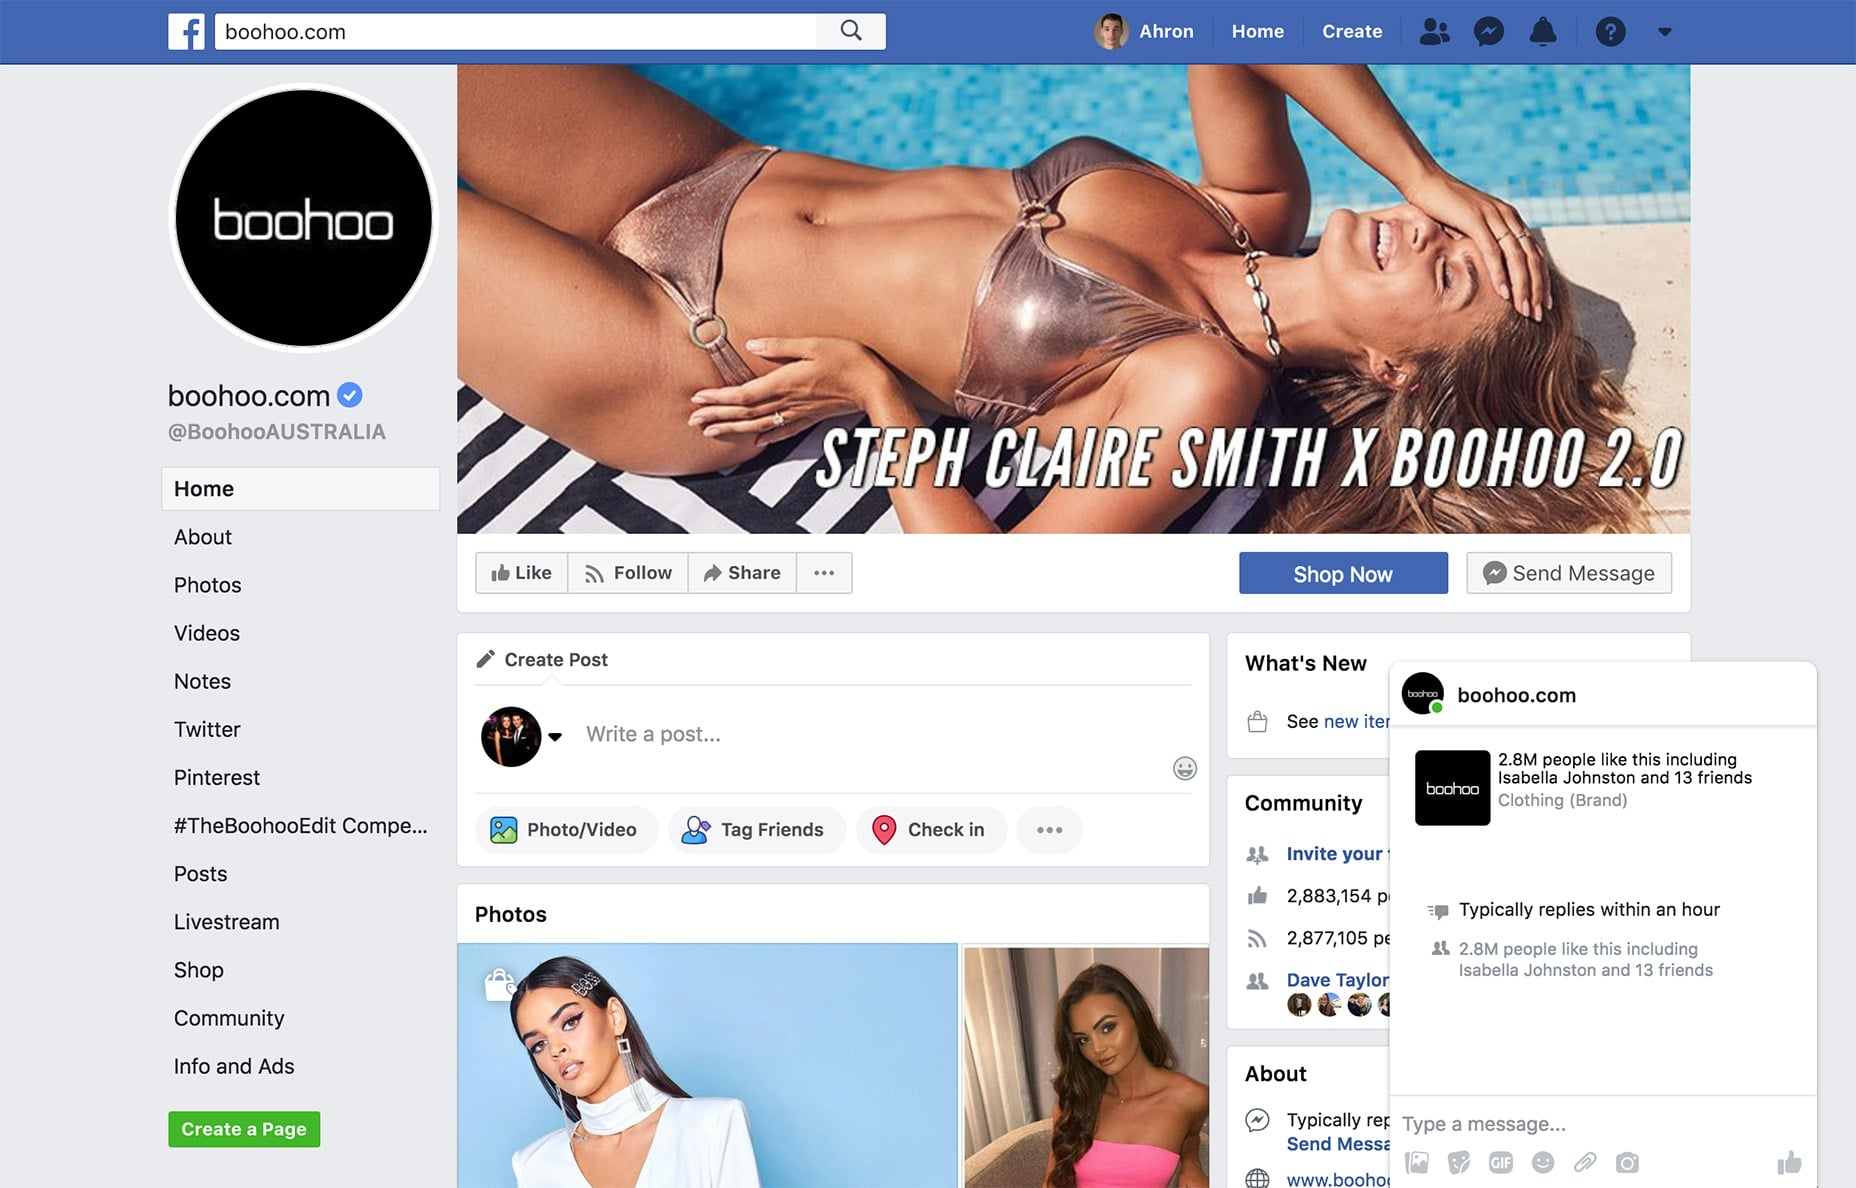 Boohoo encourages customers to message them on Facebook